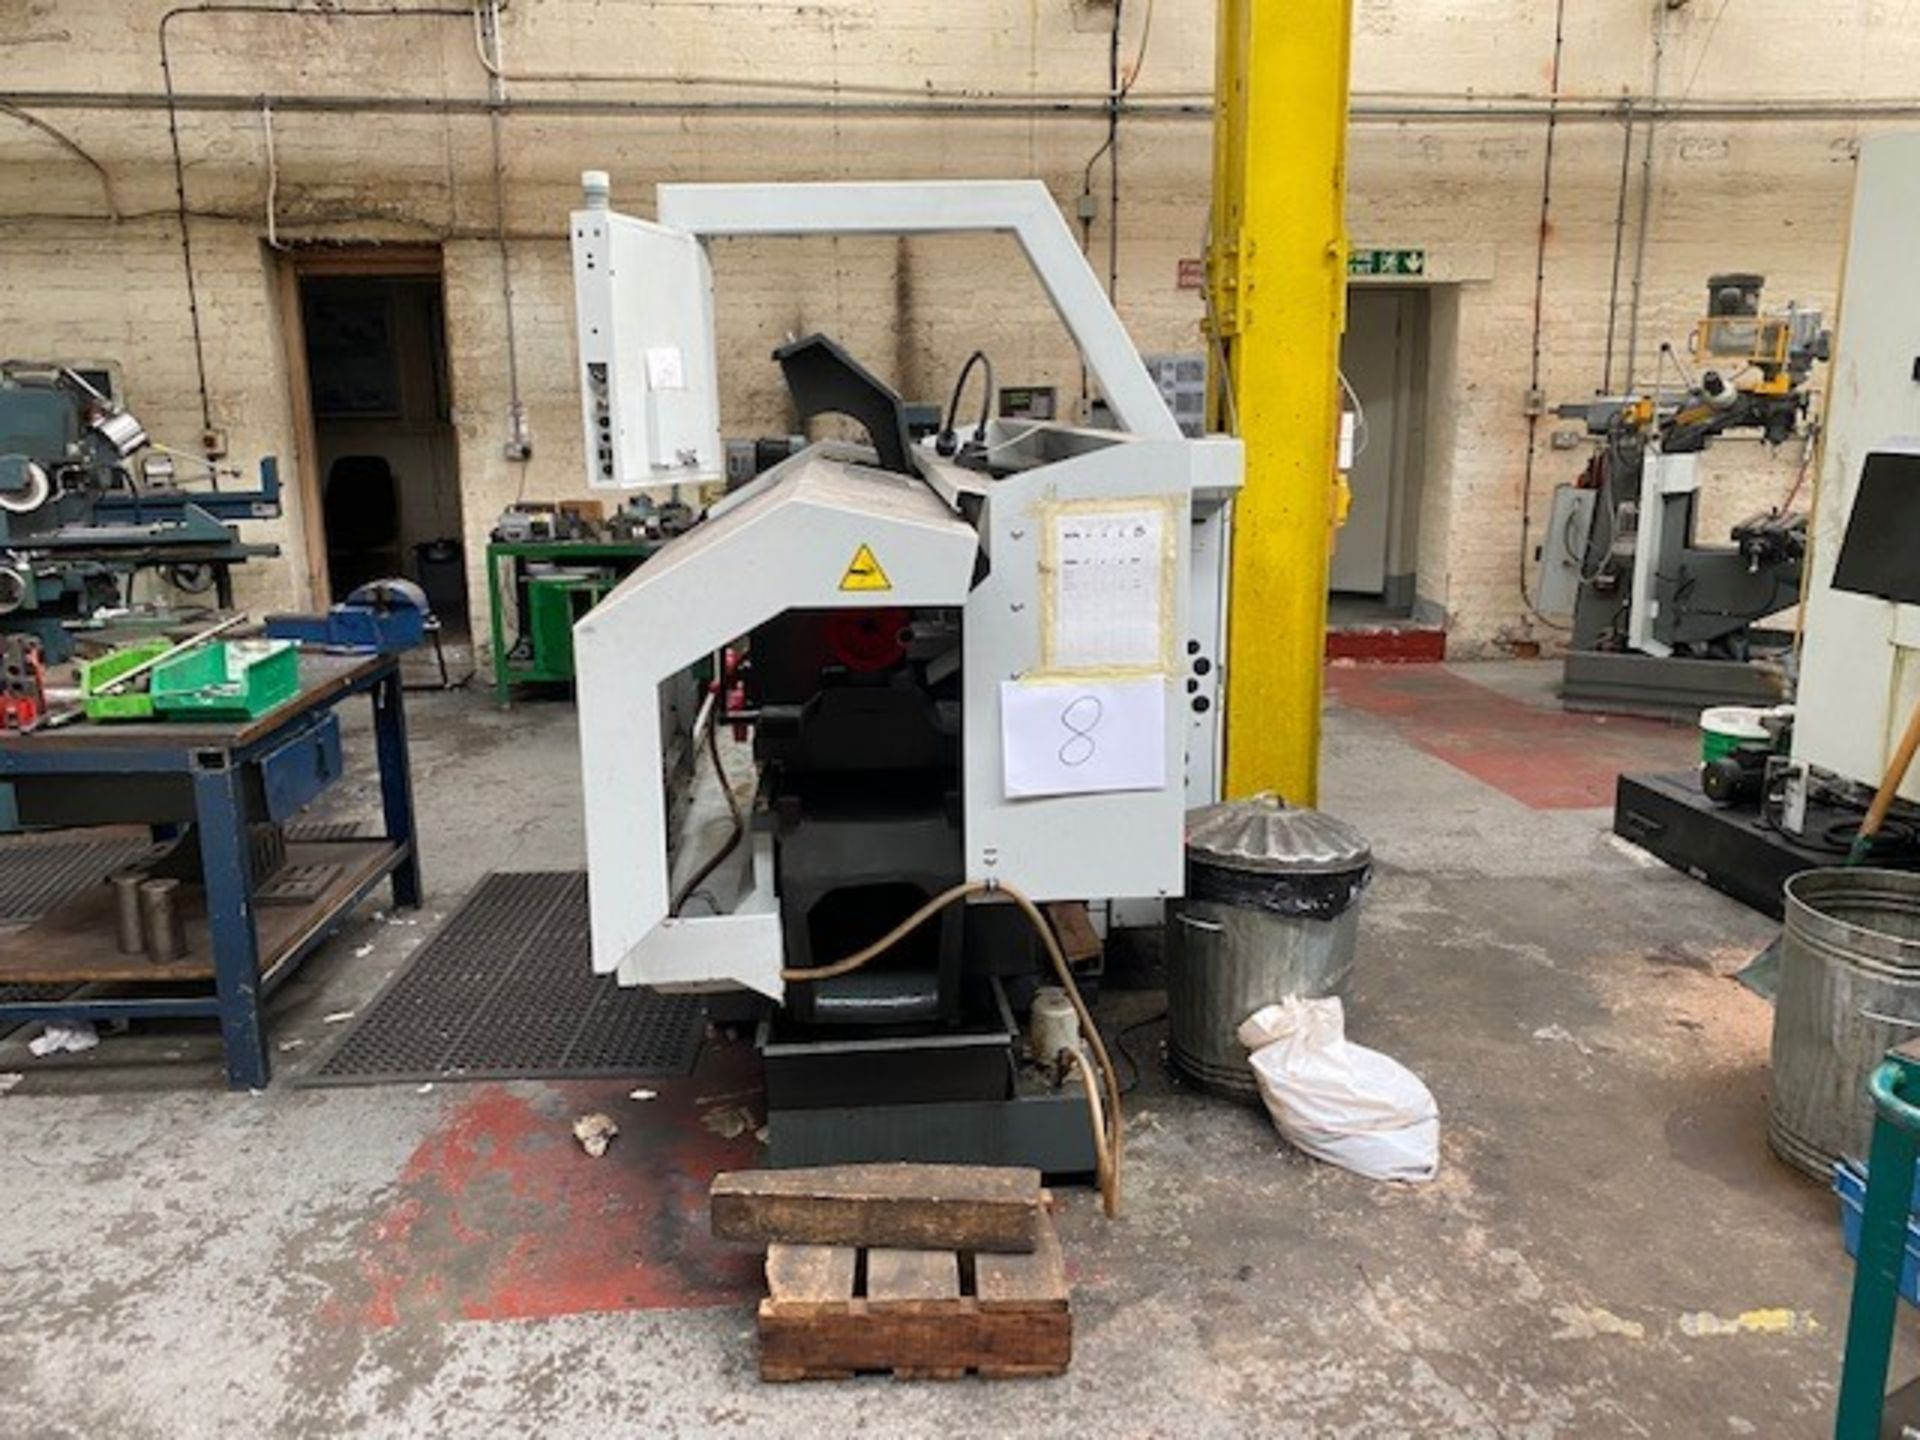 HASS ENCLOSED 2-AXIS CNC TOOLROOM LATHE WITH HASS CONTROLLER MODEL: TL-2 SERIAL NO: 3089388 DMF: - Image 3 of 5